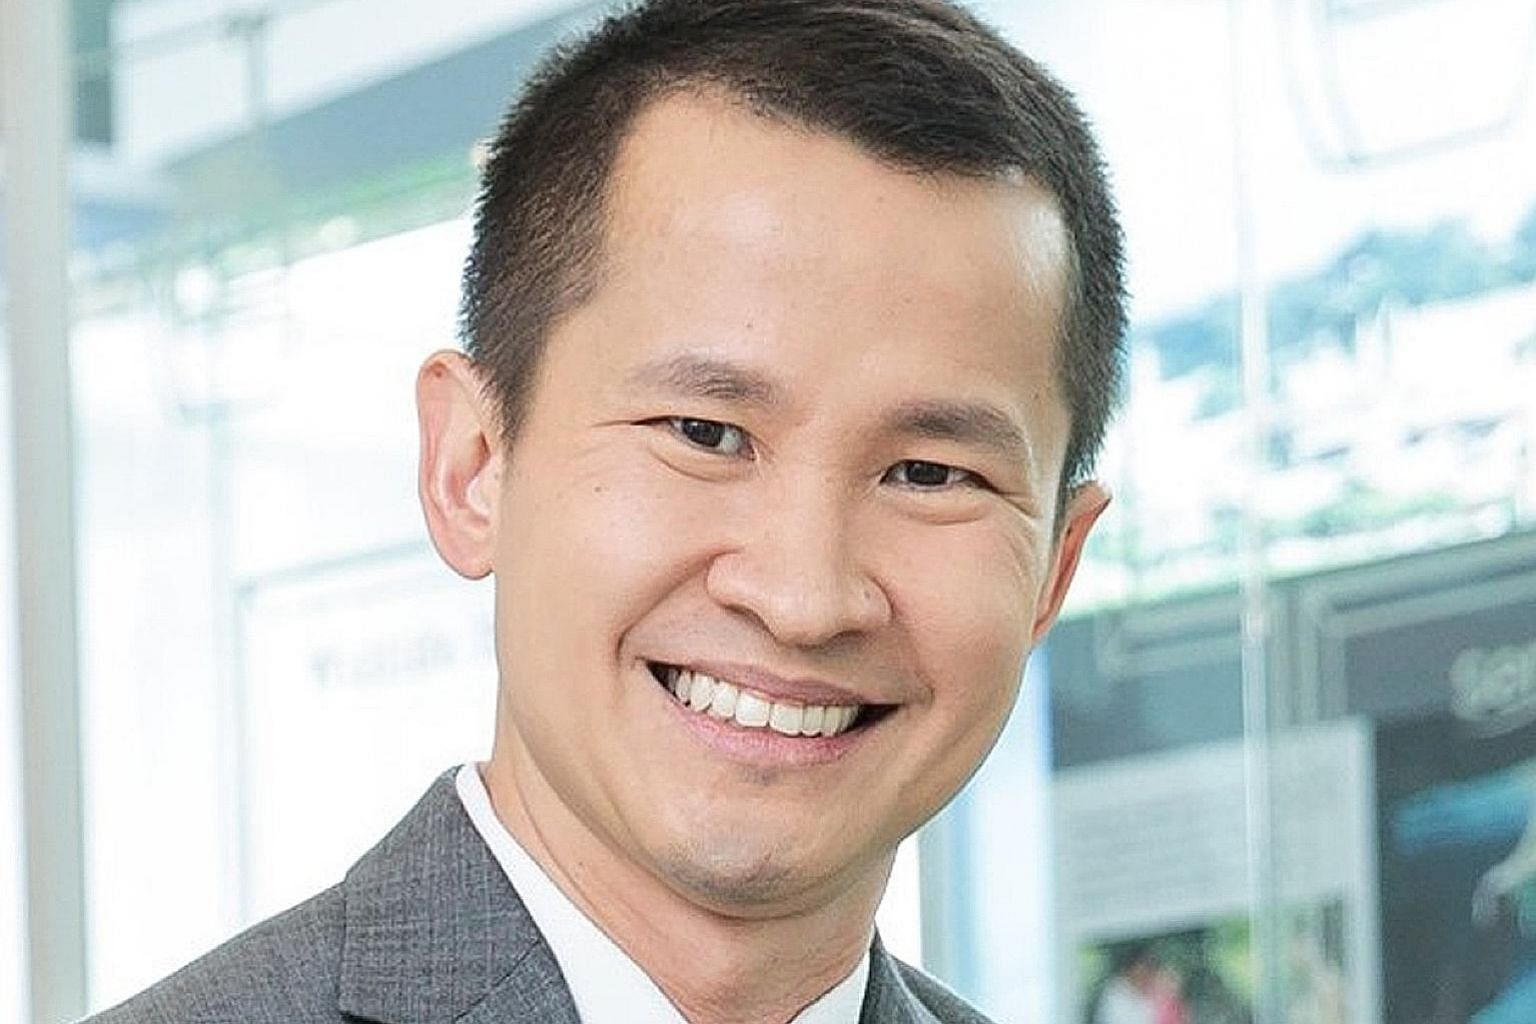 Lionel Yeo, 46, who helmed the Singapore Tourism Board for six years, will join the Sports Hub Pte Ltd as its new chief executive from Feb 3.